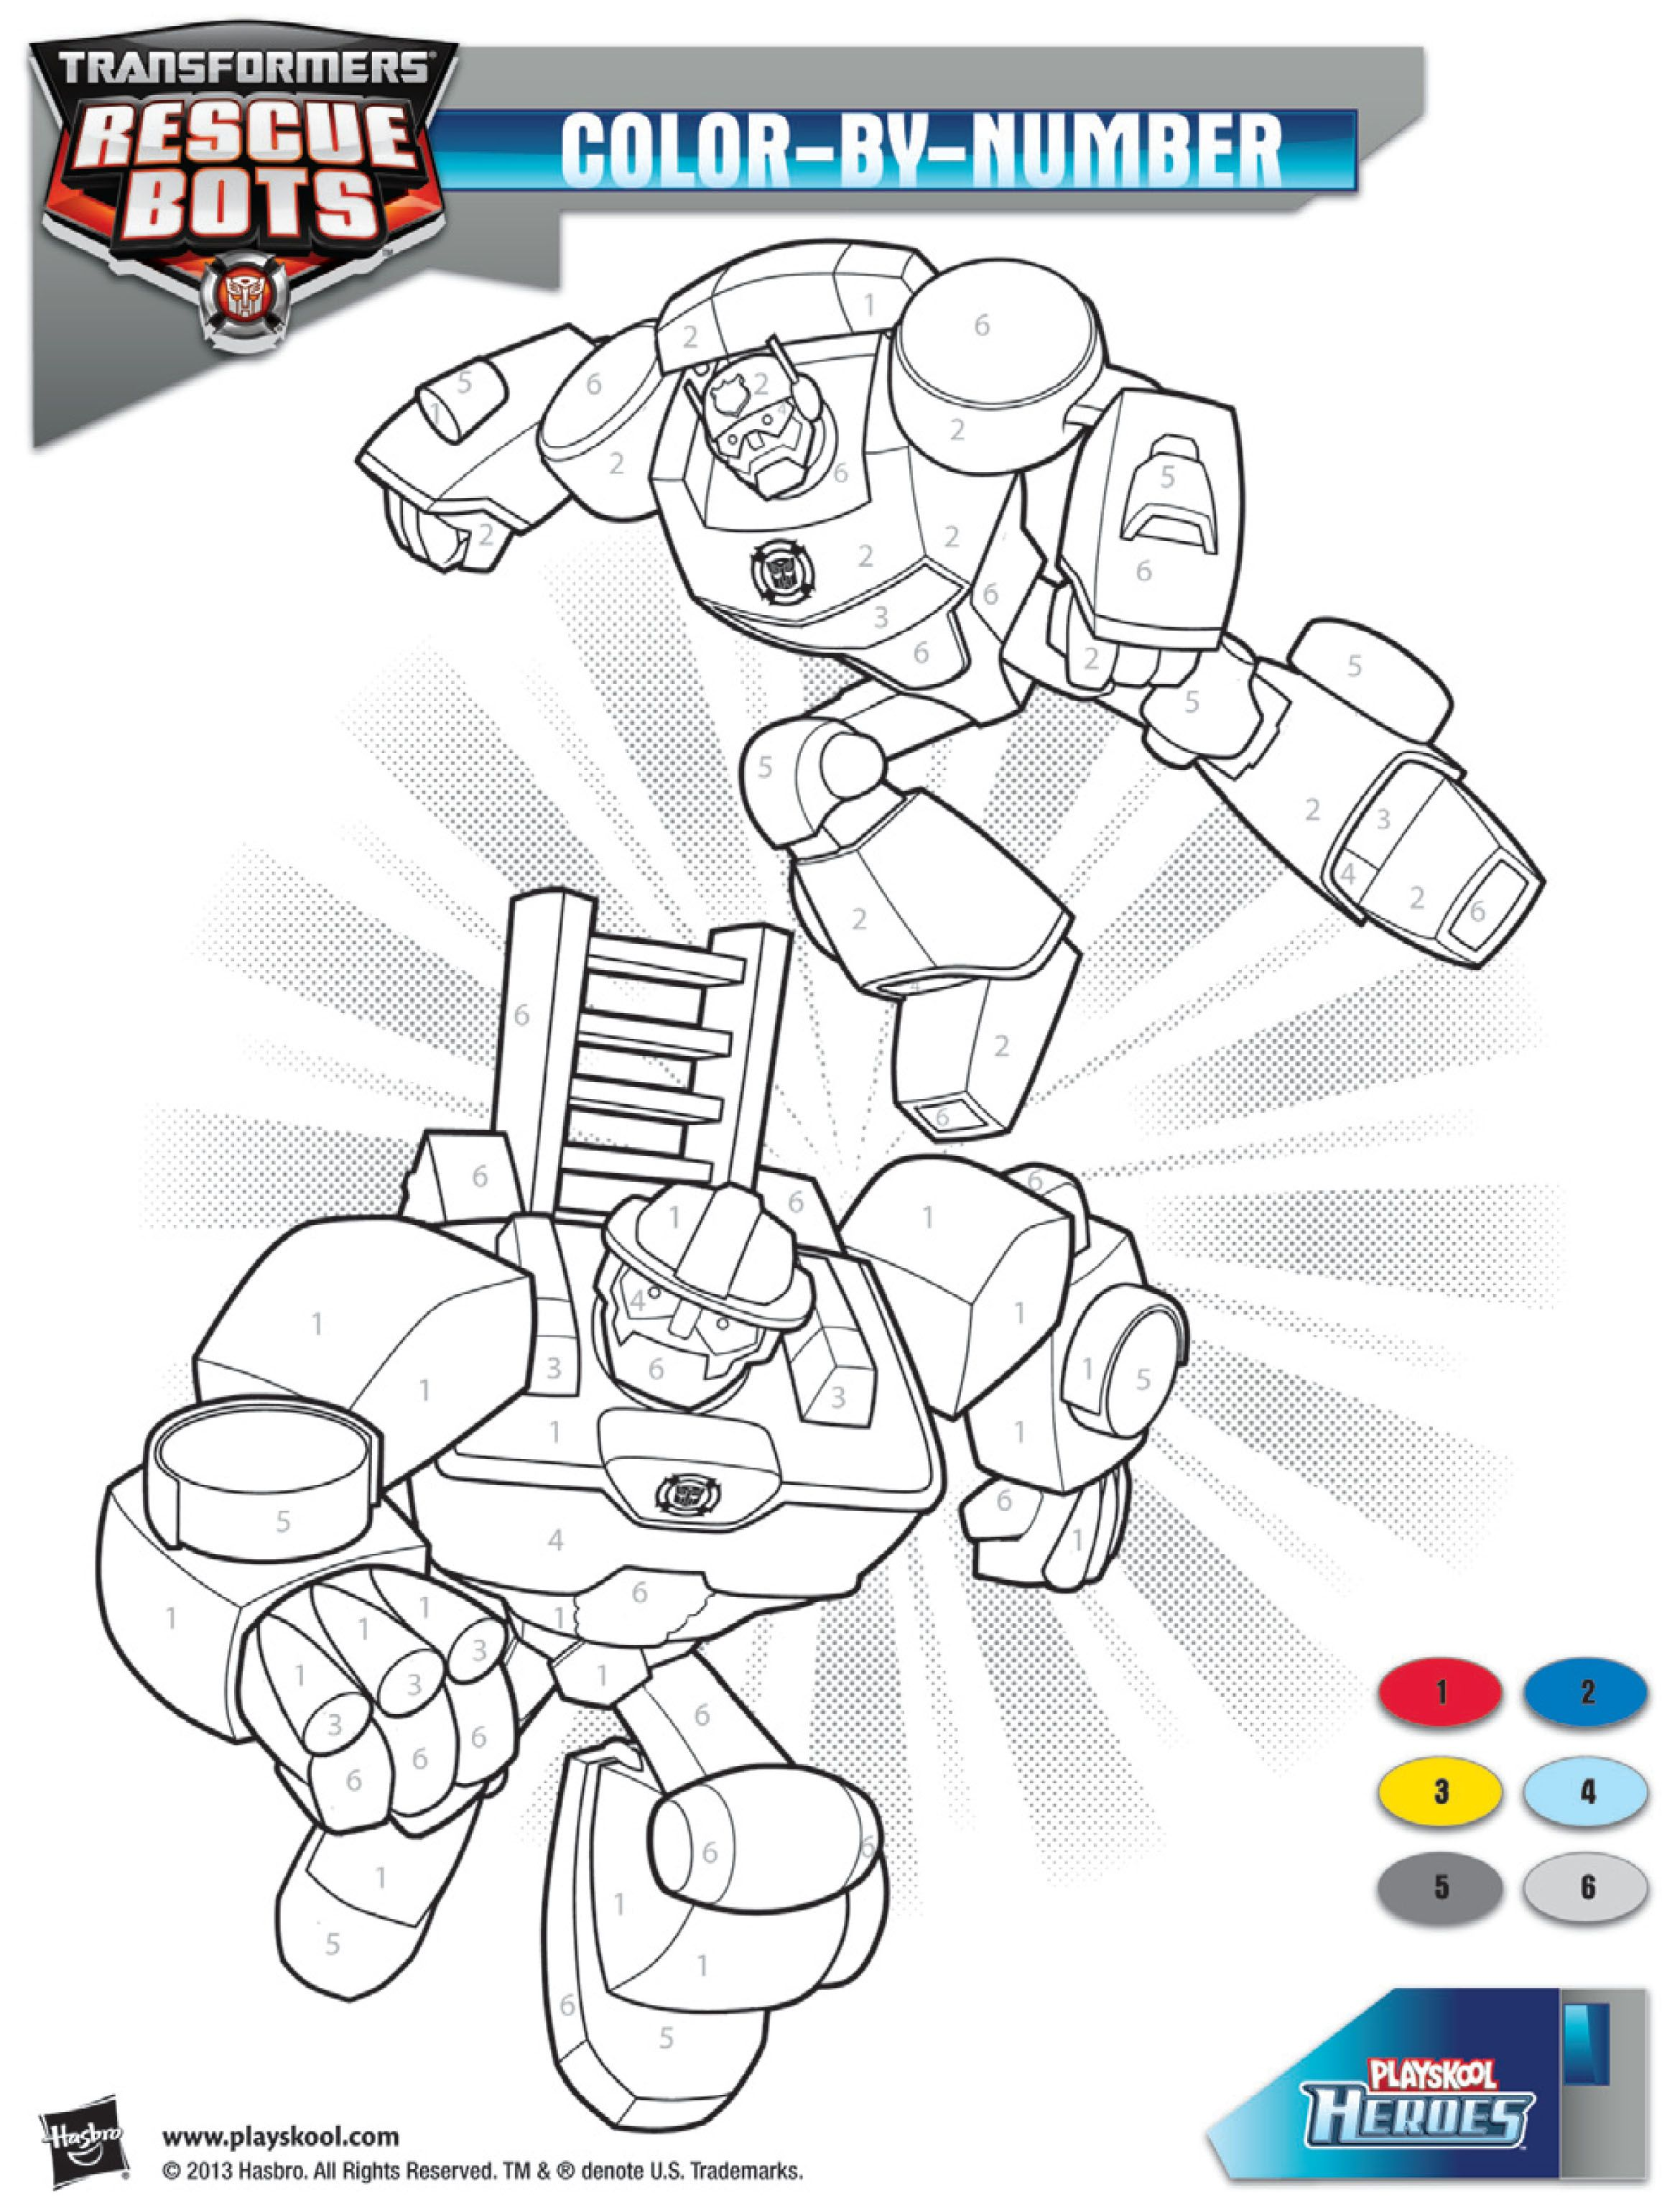 be a hero and color these transformers rescue bots by number